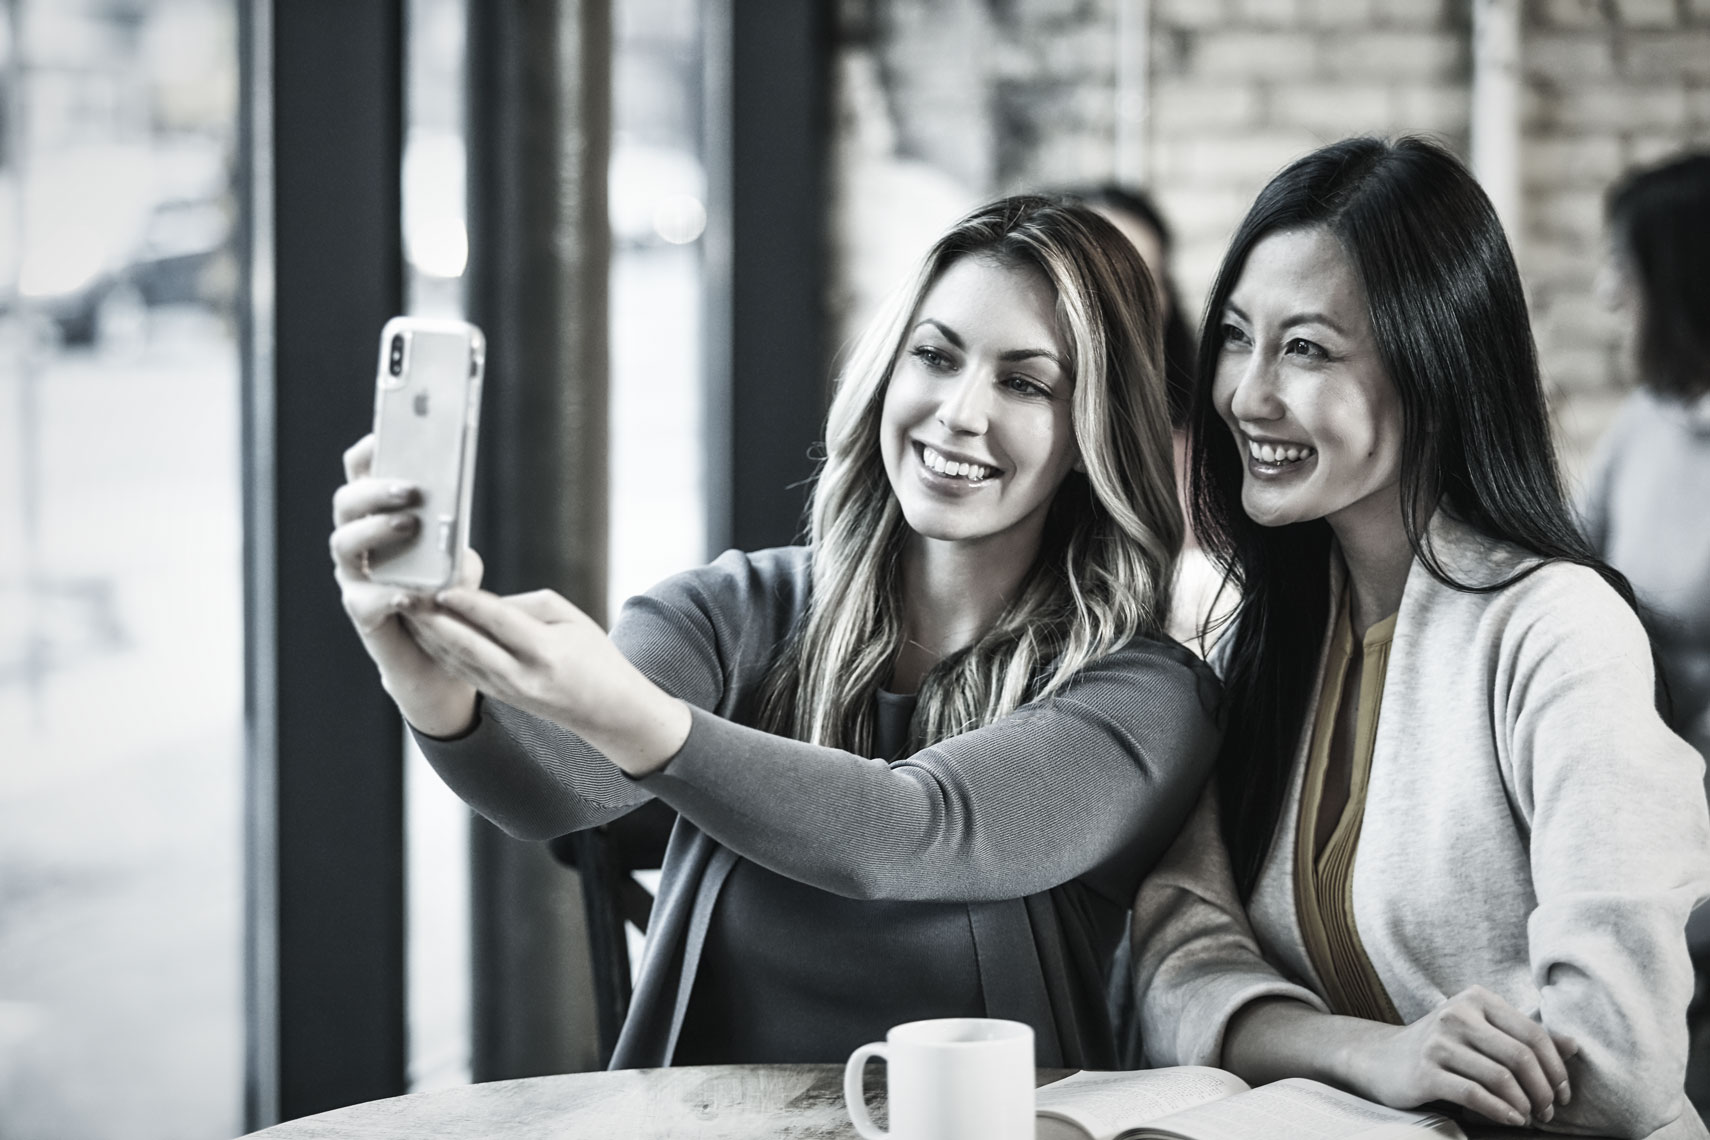 Two beautiful young women/selfie/cafe/lifestyle photography